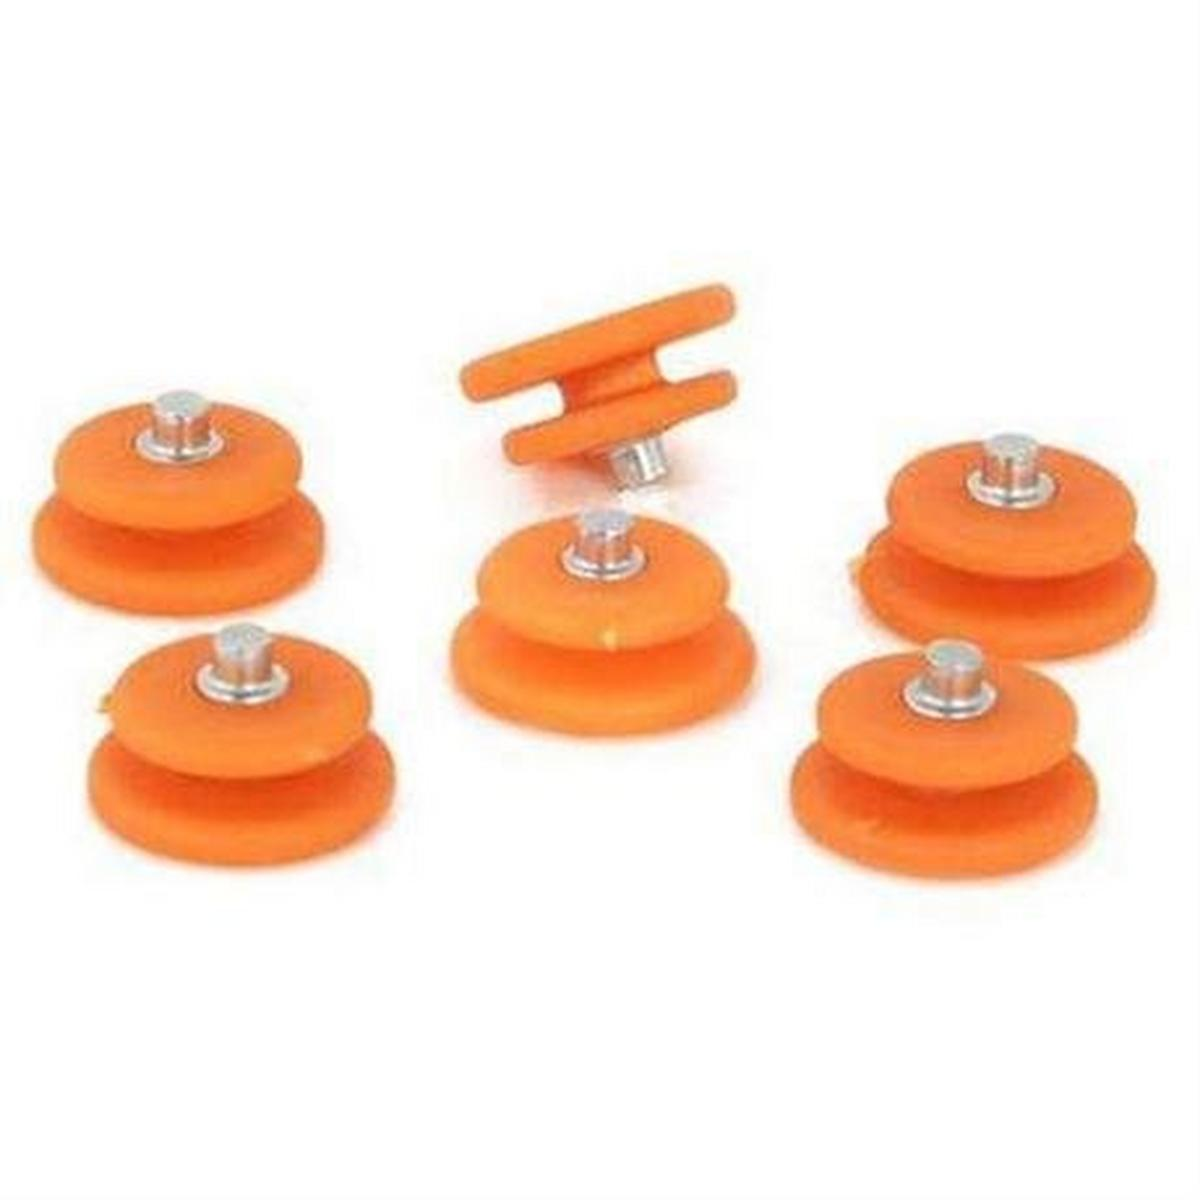 Petzl Charlet Petzl Spiky Pavement Crampon Replacement Front Points (Pack of 8)